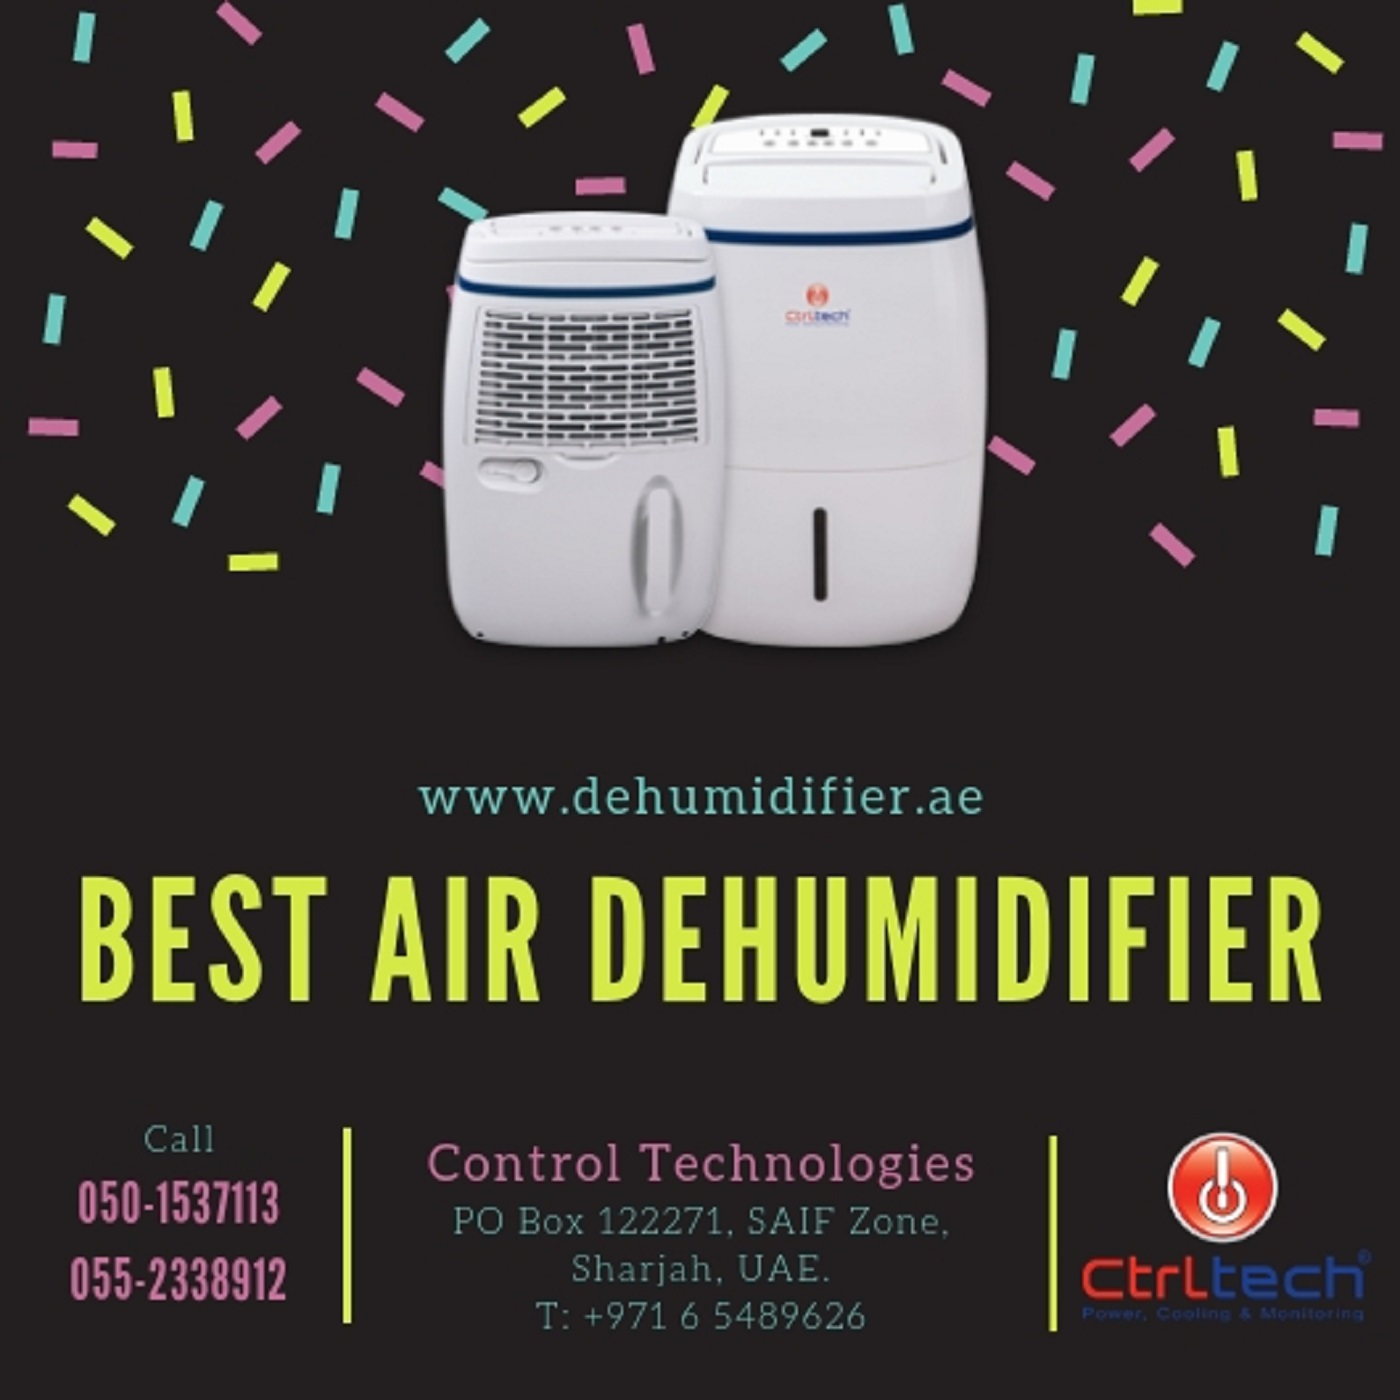 Portable Dehumidifier. Home Dehumidifier. Room dehumidifier. Small dehumidifier. Air dehumidifier. D